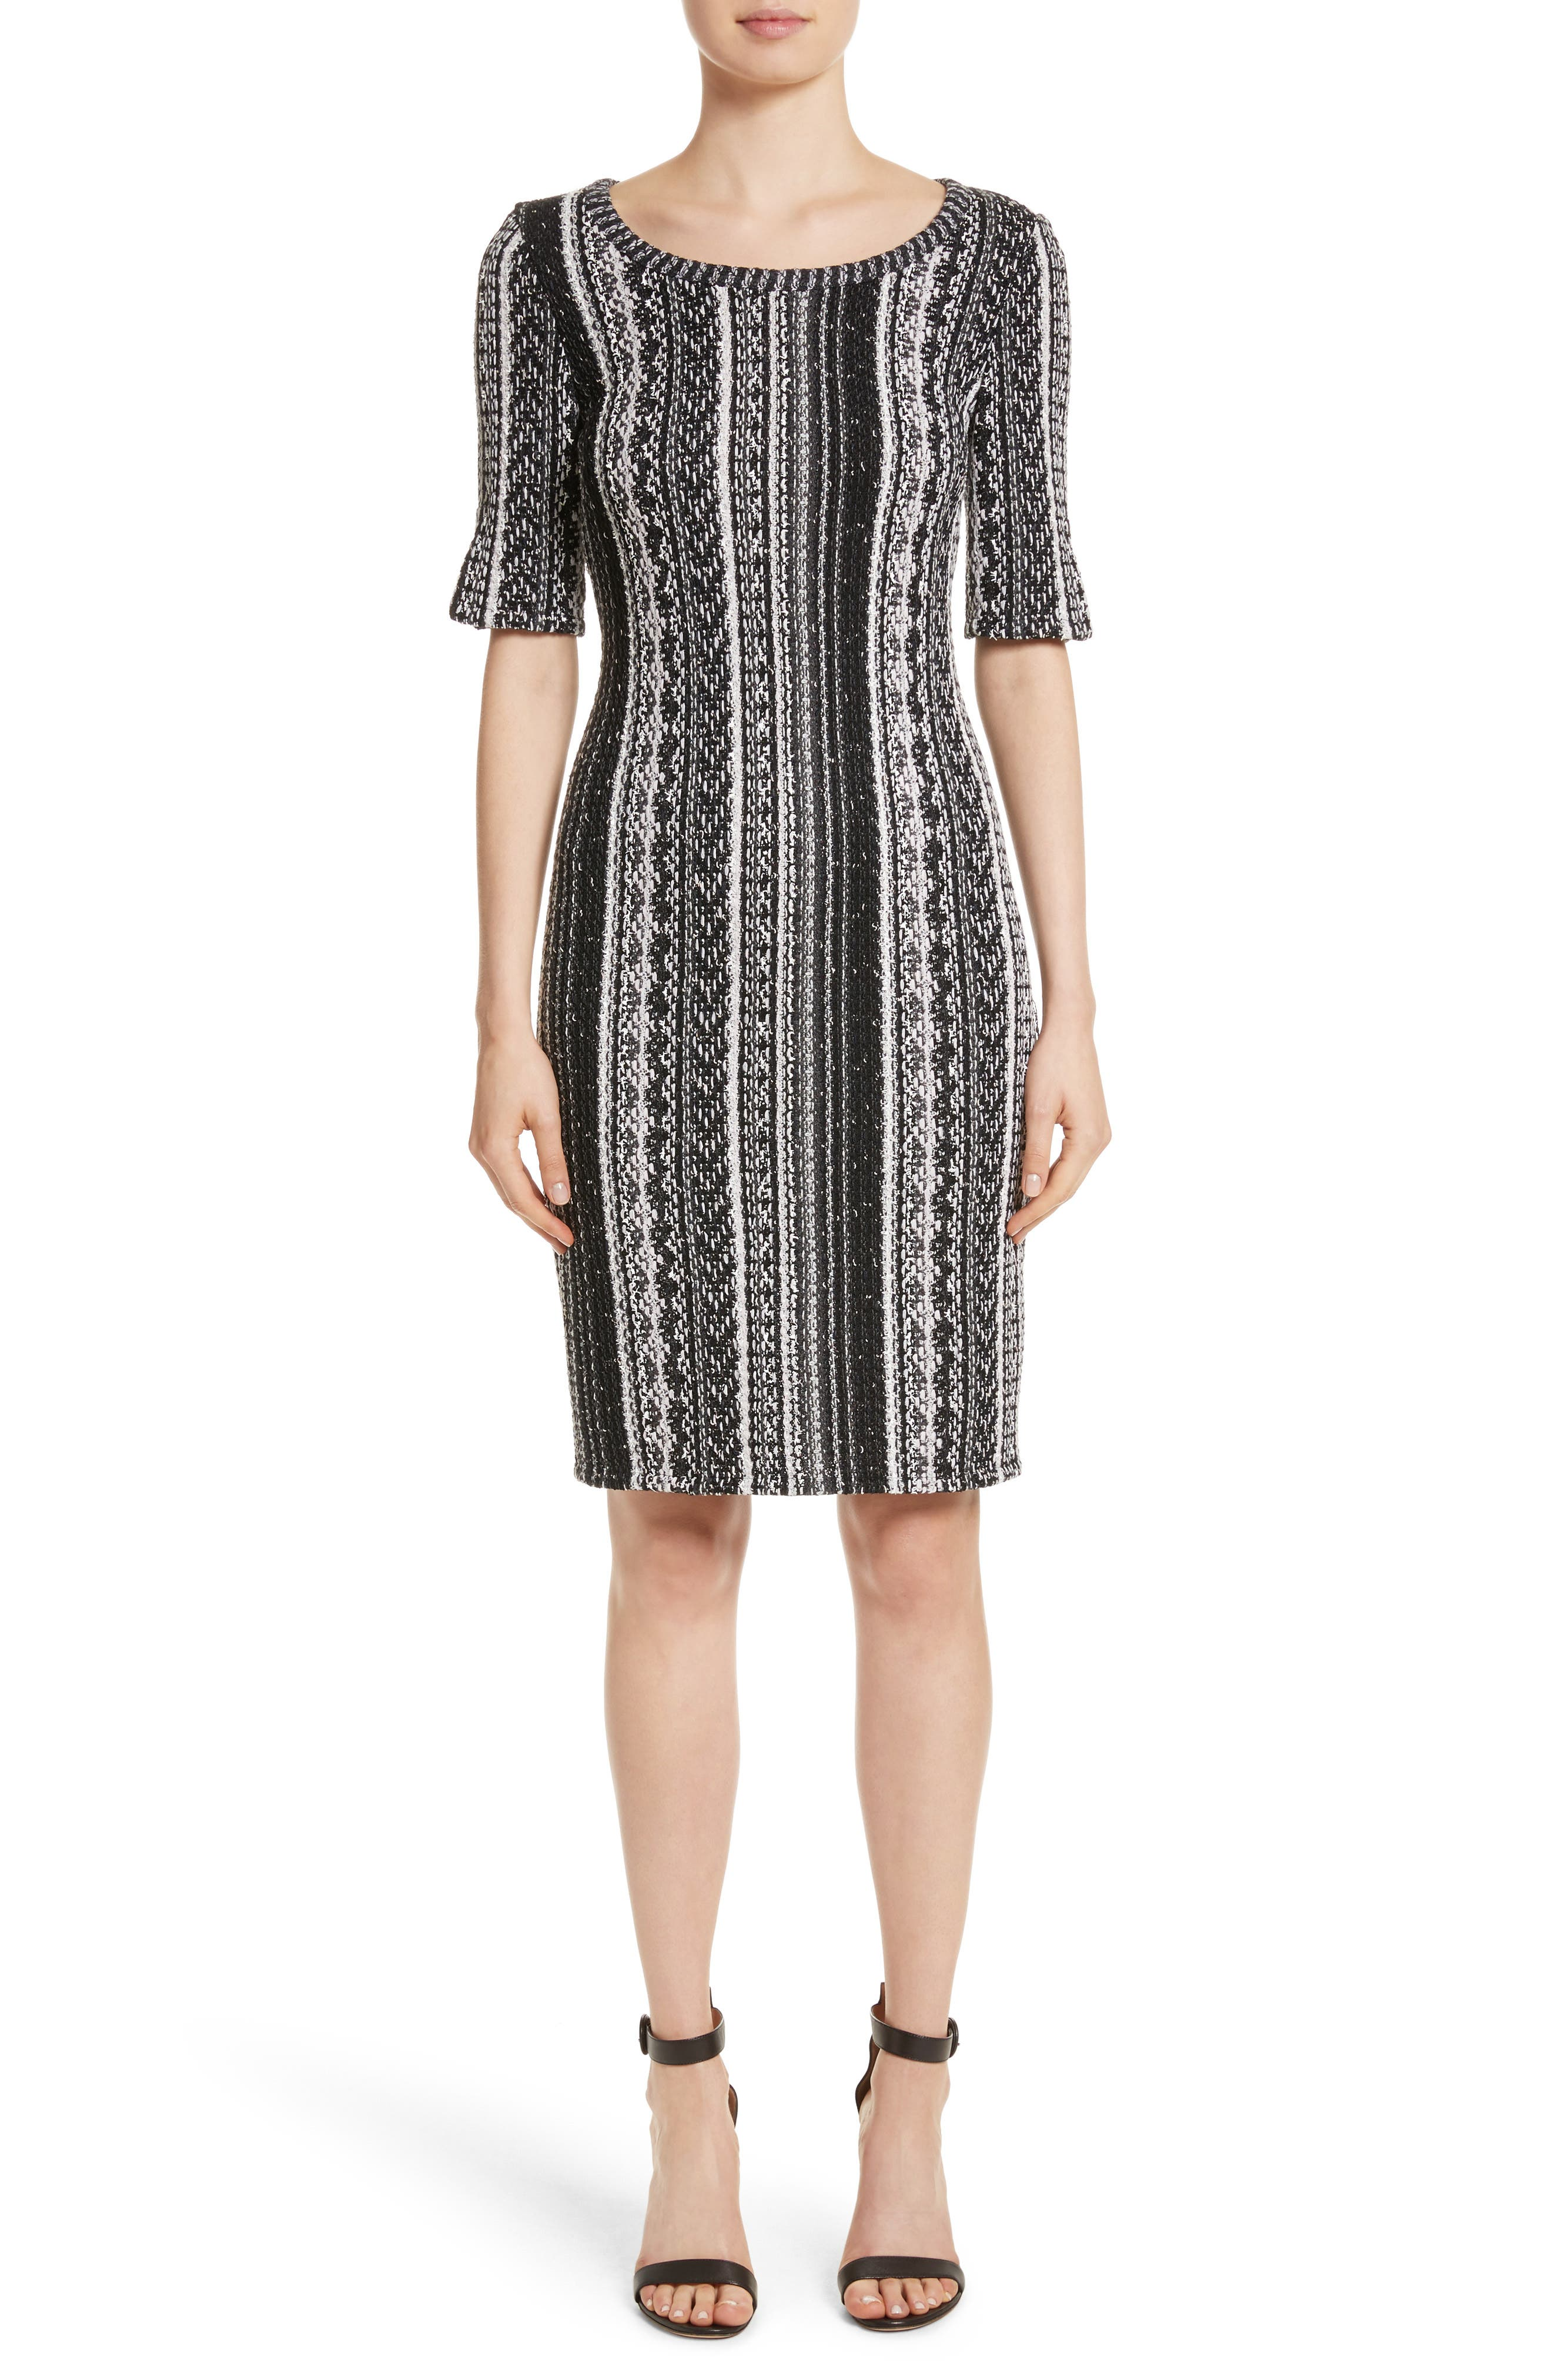 Alternate Image 1 Selected - St. John Collection Ombré Stripe Tweed Knit Dress